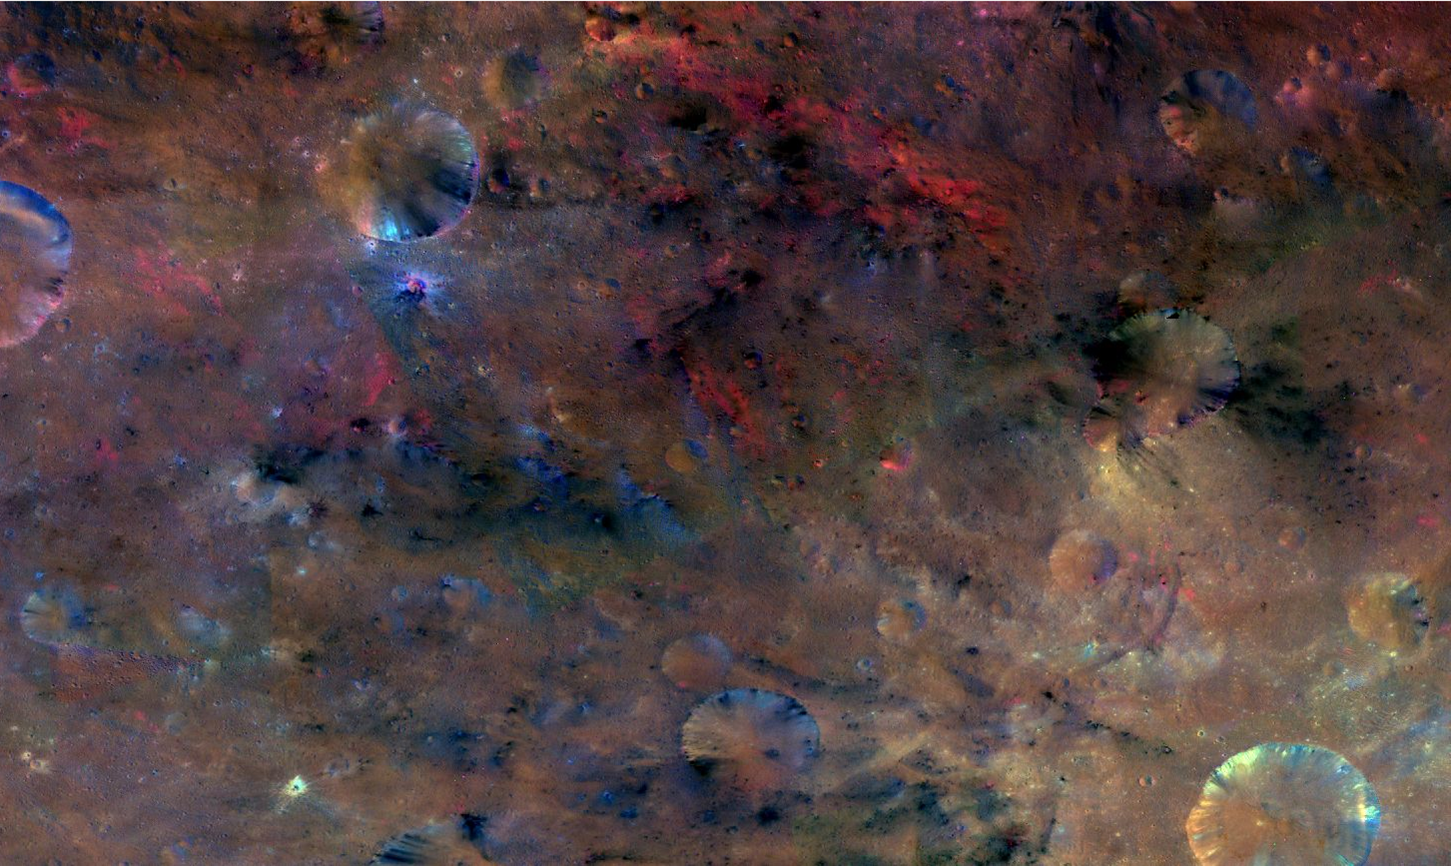 This colorful image from NASA's Dawn mission shows material northwest of the crater Sextilia on the giant asteroid Vesta. While a large asteroid impact probably brought the black material, the red material may have been melted by the impact. Image courtesy of NASA/JPL-Caltech/UCLAMPS/DLR/IDA